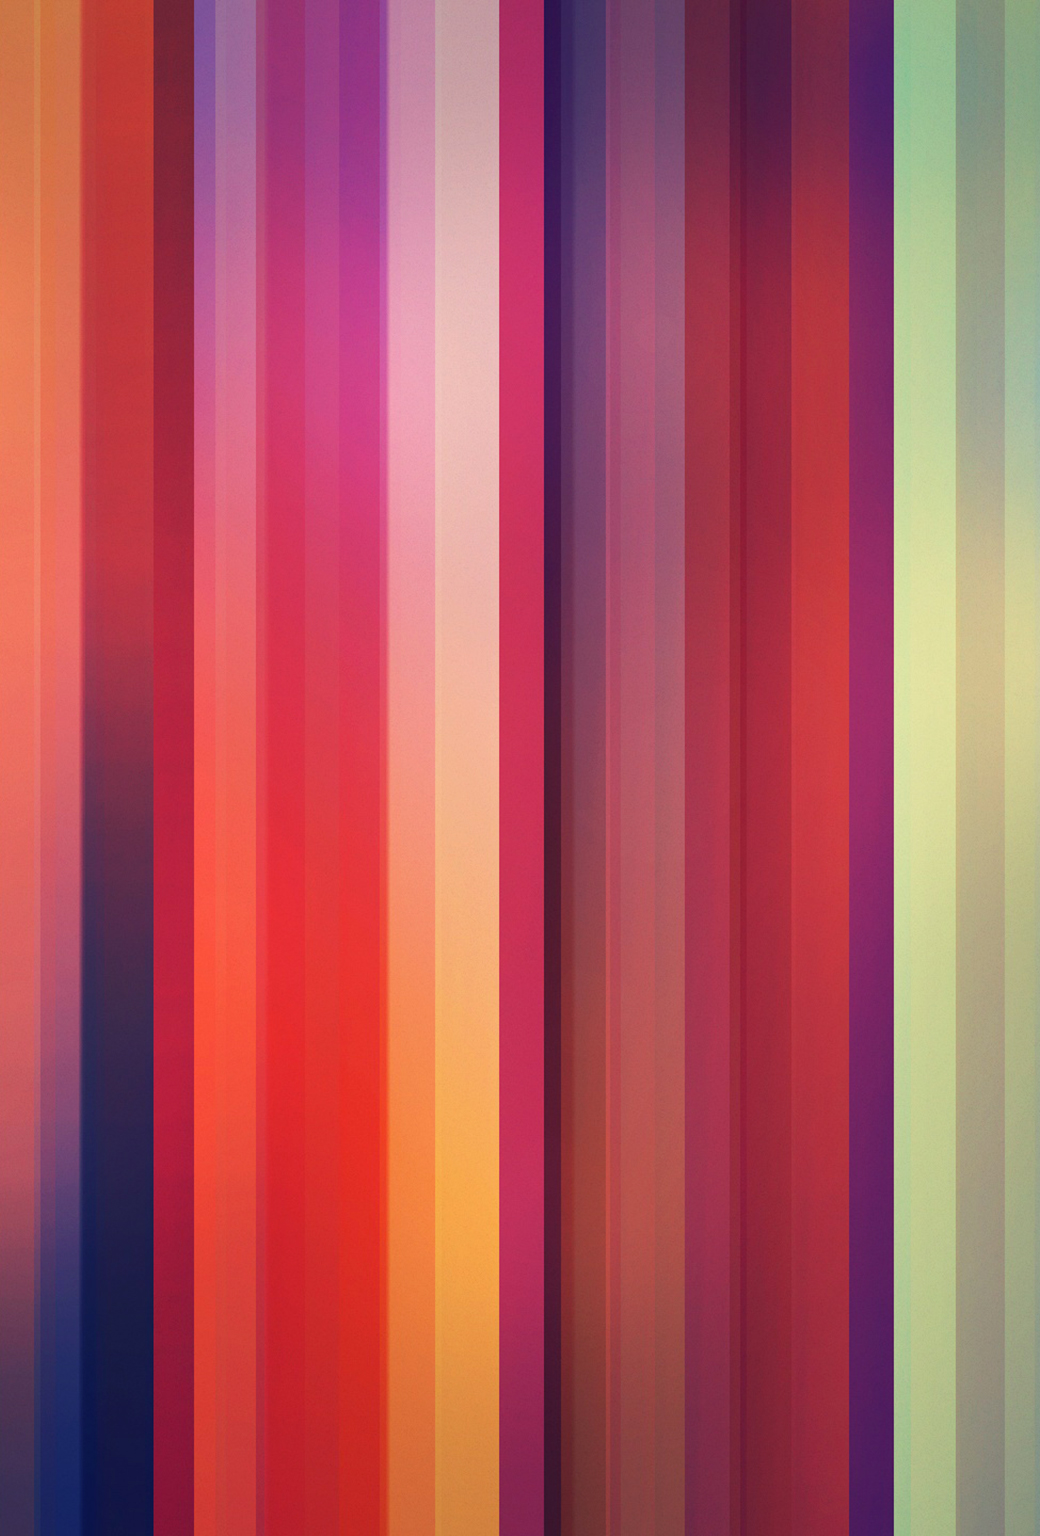 Linear Coloration 3Wallpapers iPhone Parallax Linear Coloration